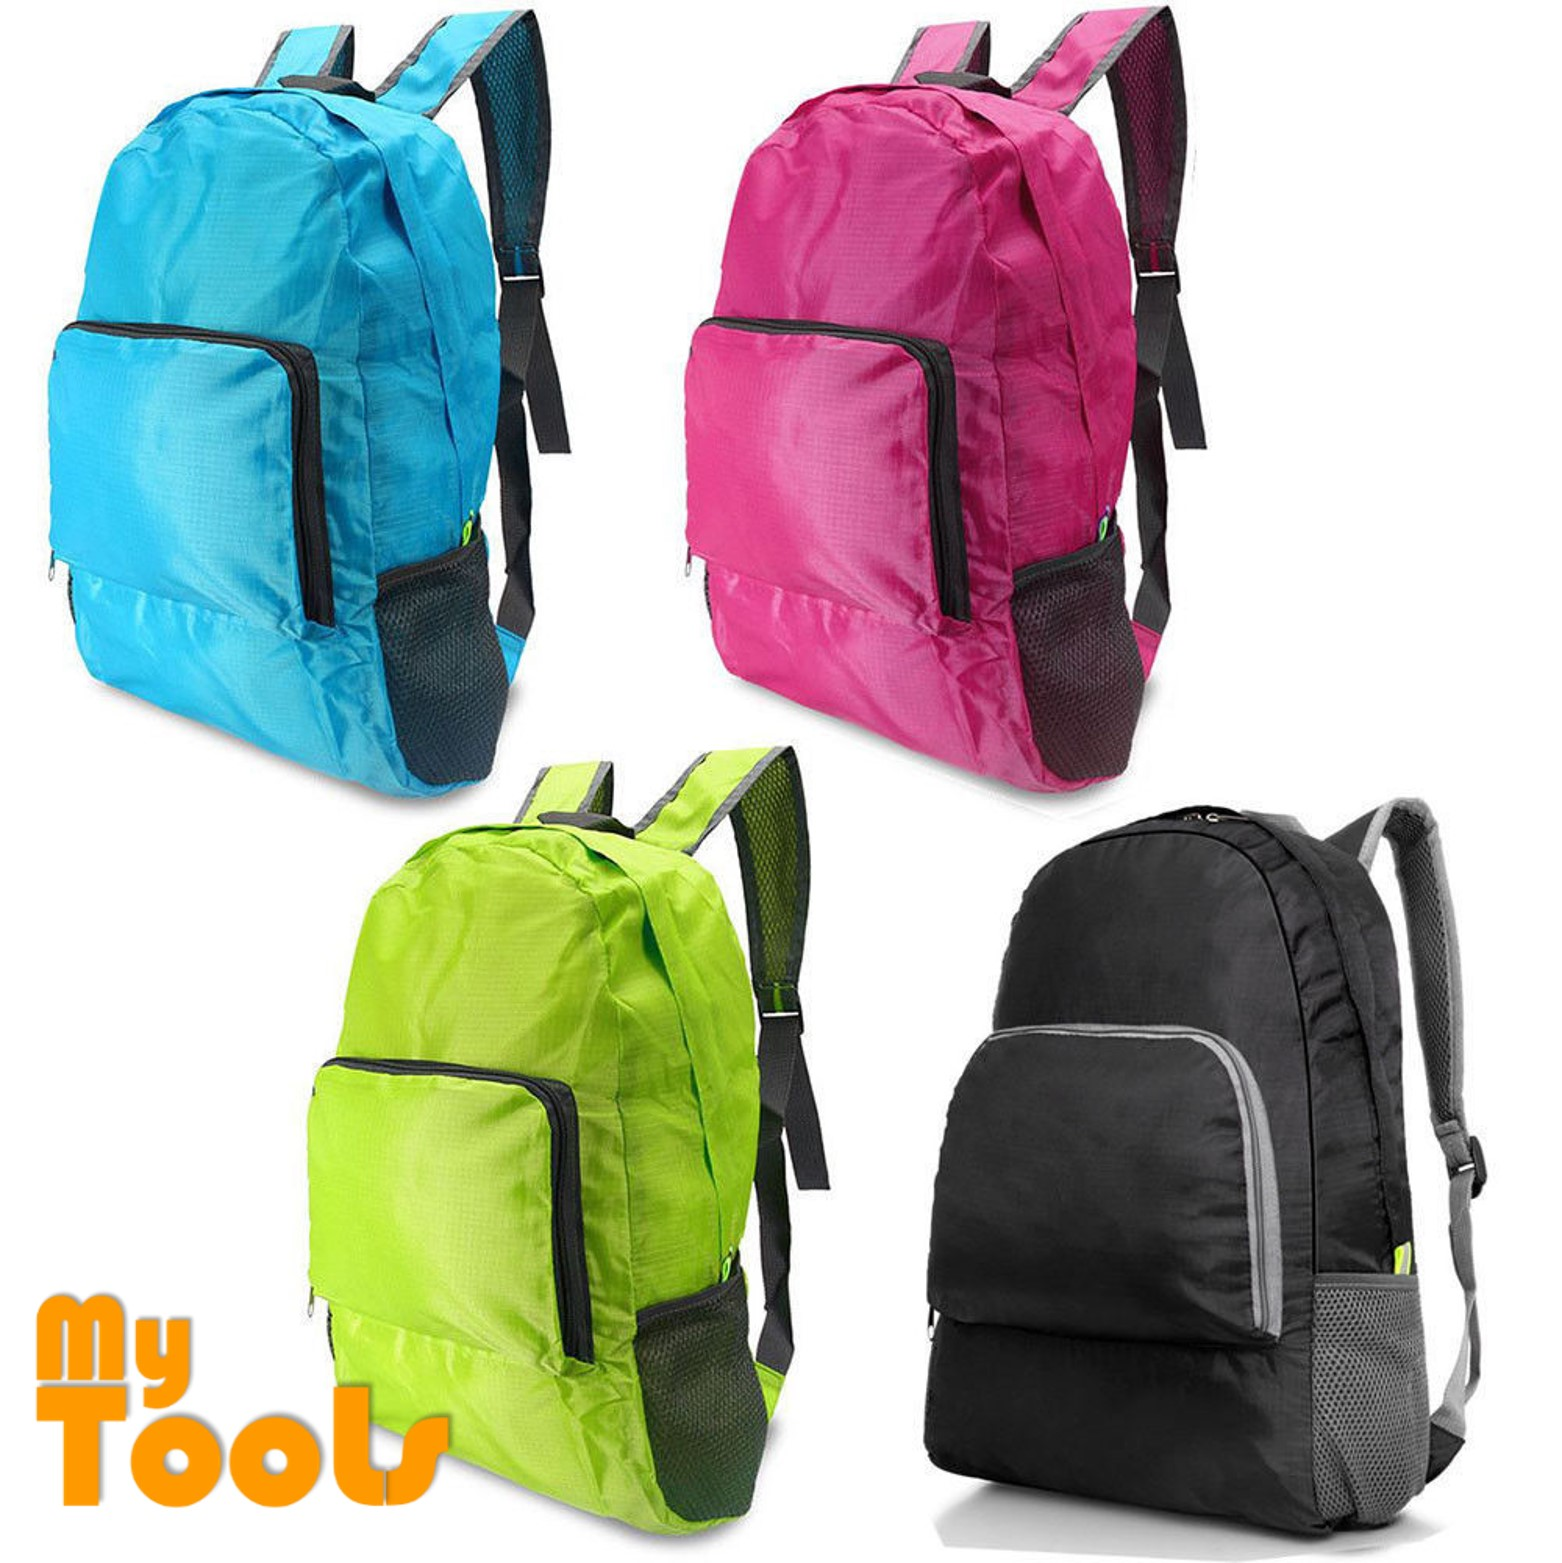 Mytools Foldable Waterproof Lightweight Nylon Travel Backpack